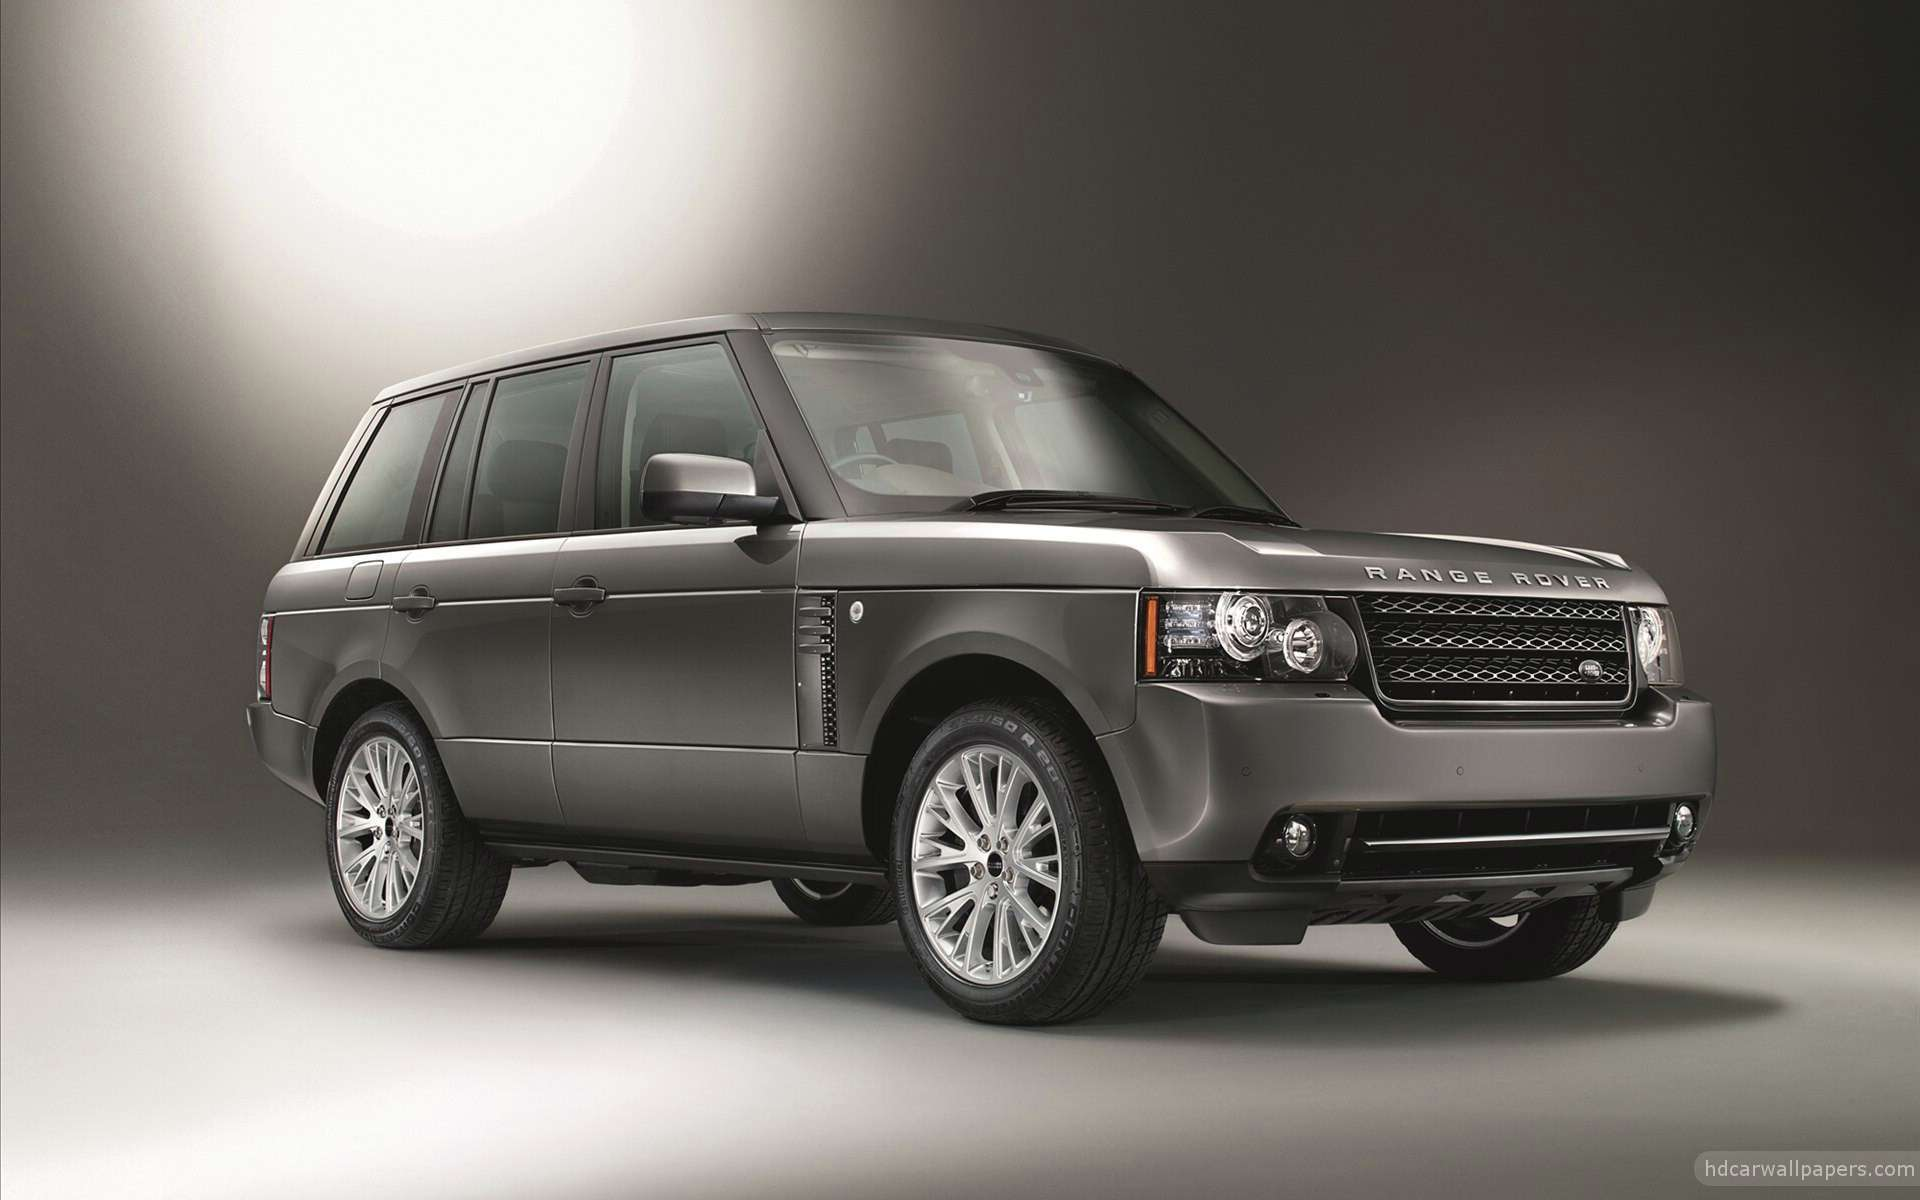 2012 Range Rover Vogue Hd Wallpapers : Hd Car Wallpapers